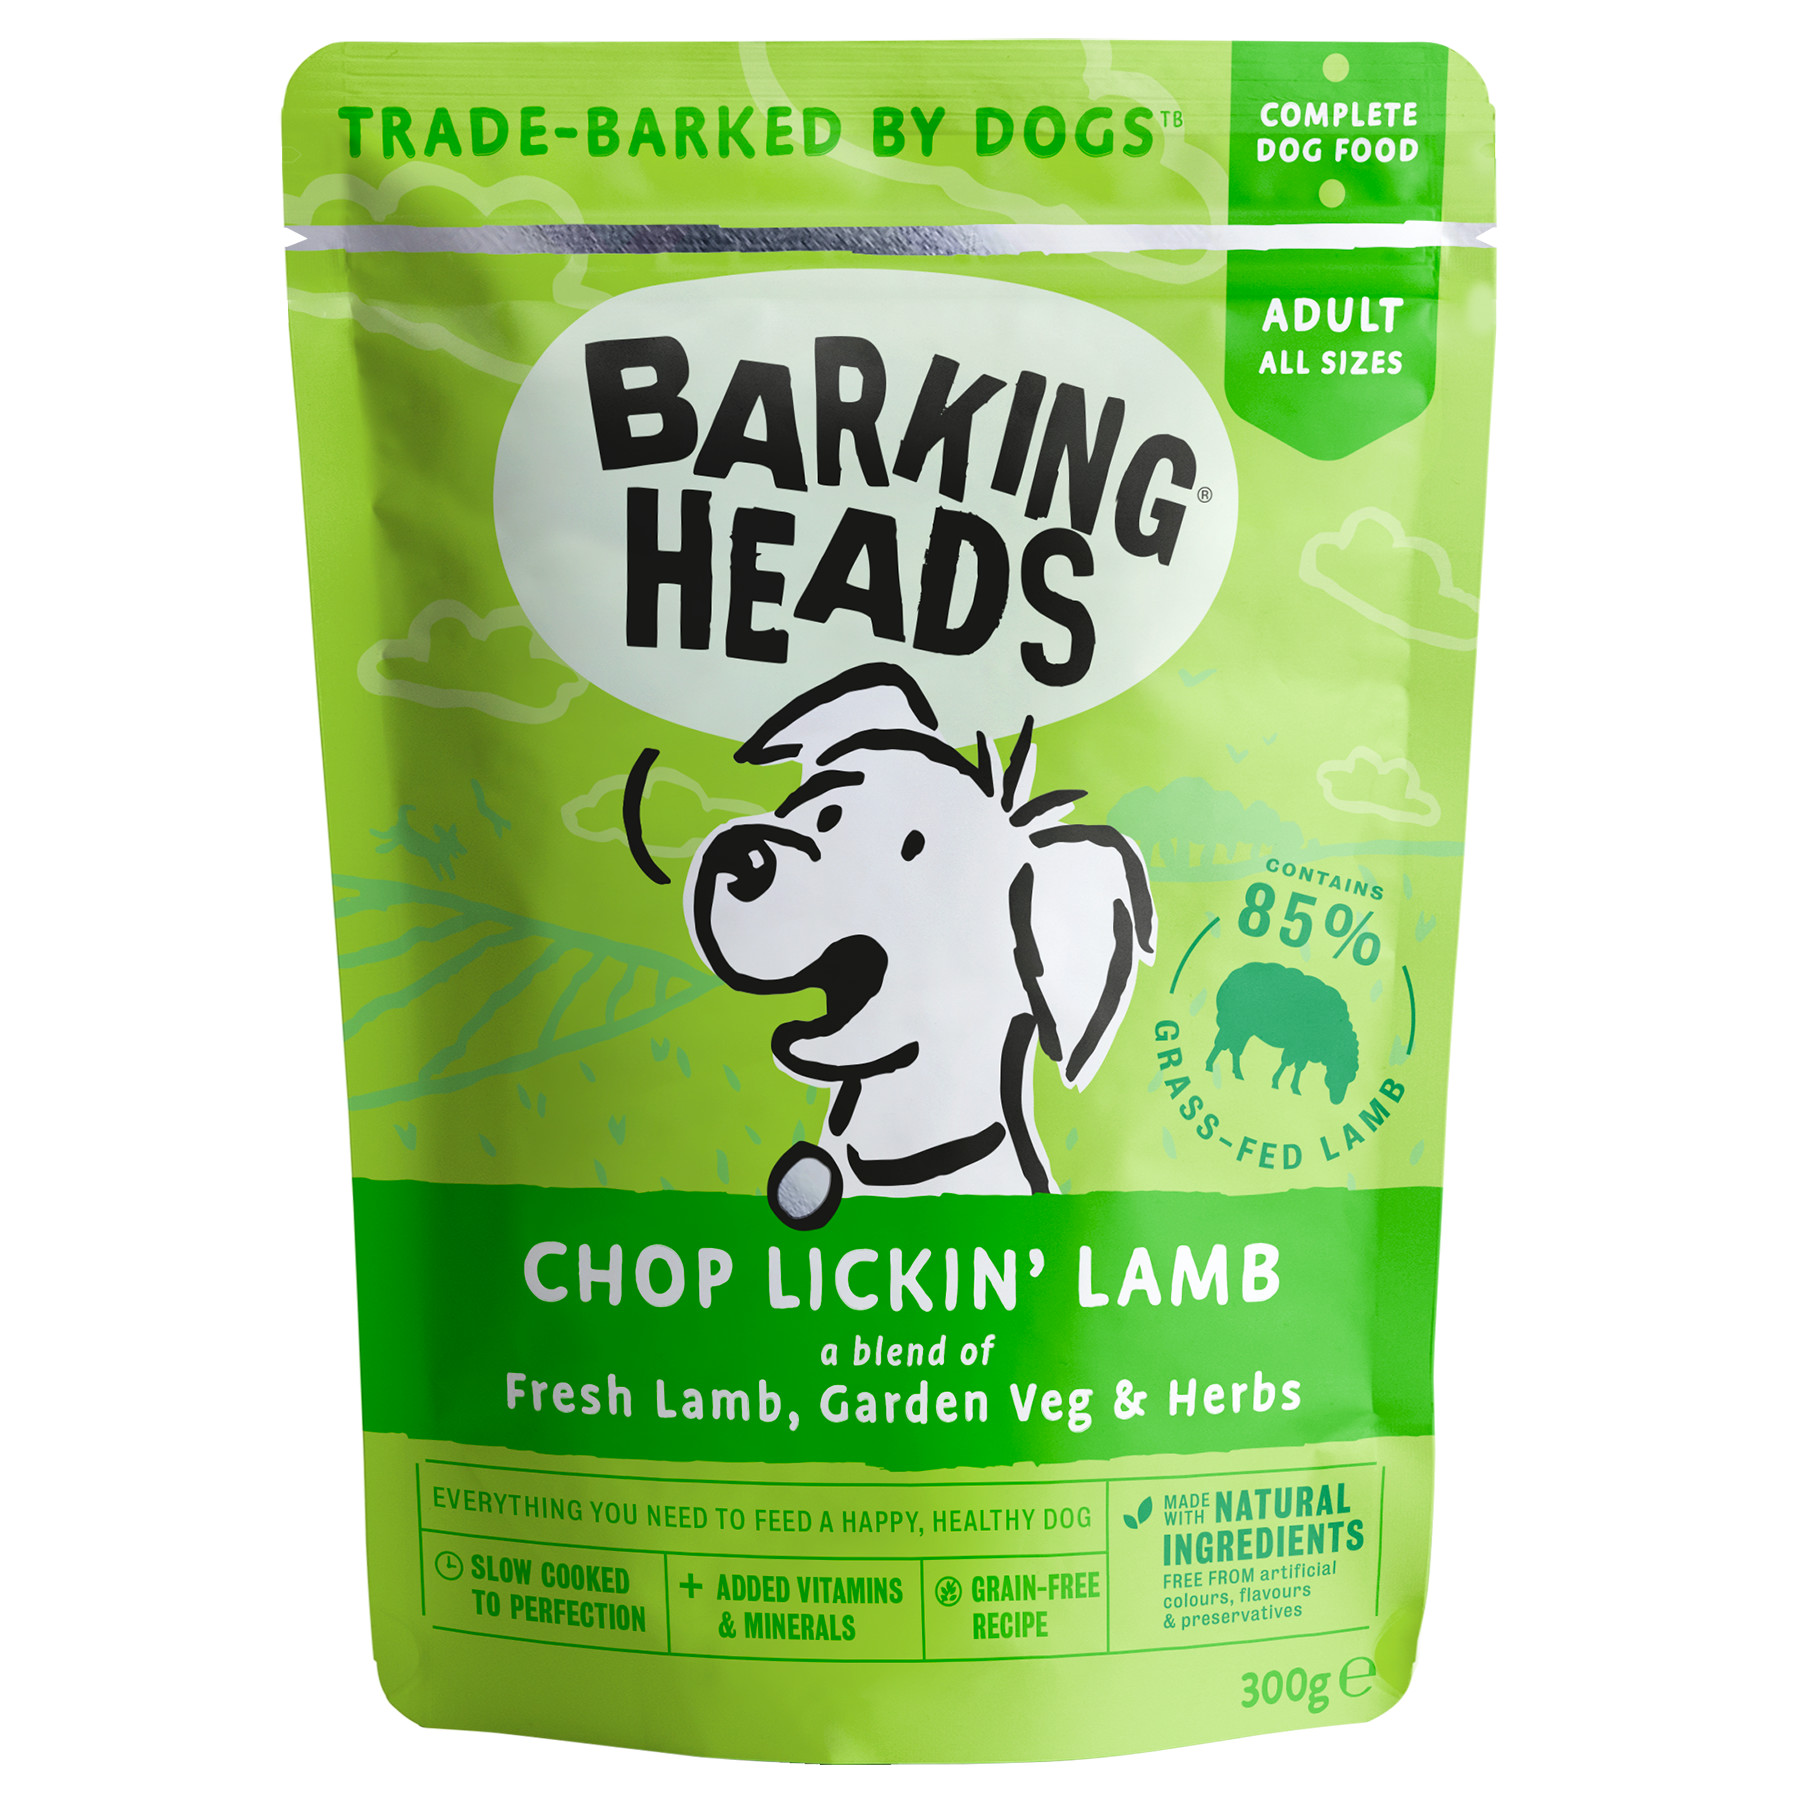 Barking Heads Chop Lickin Lamb Adult Dog Food